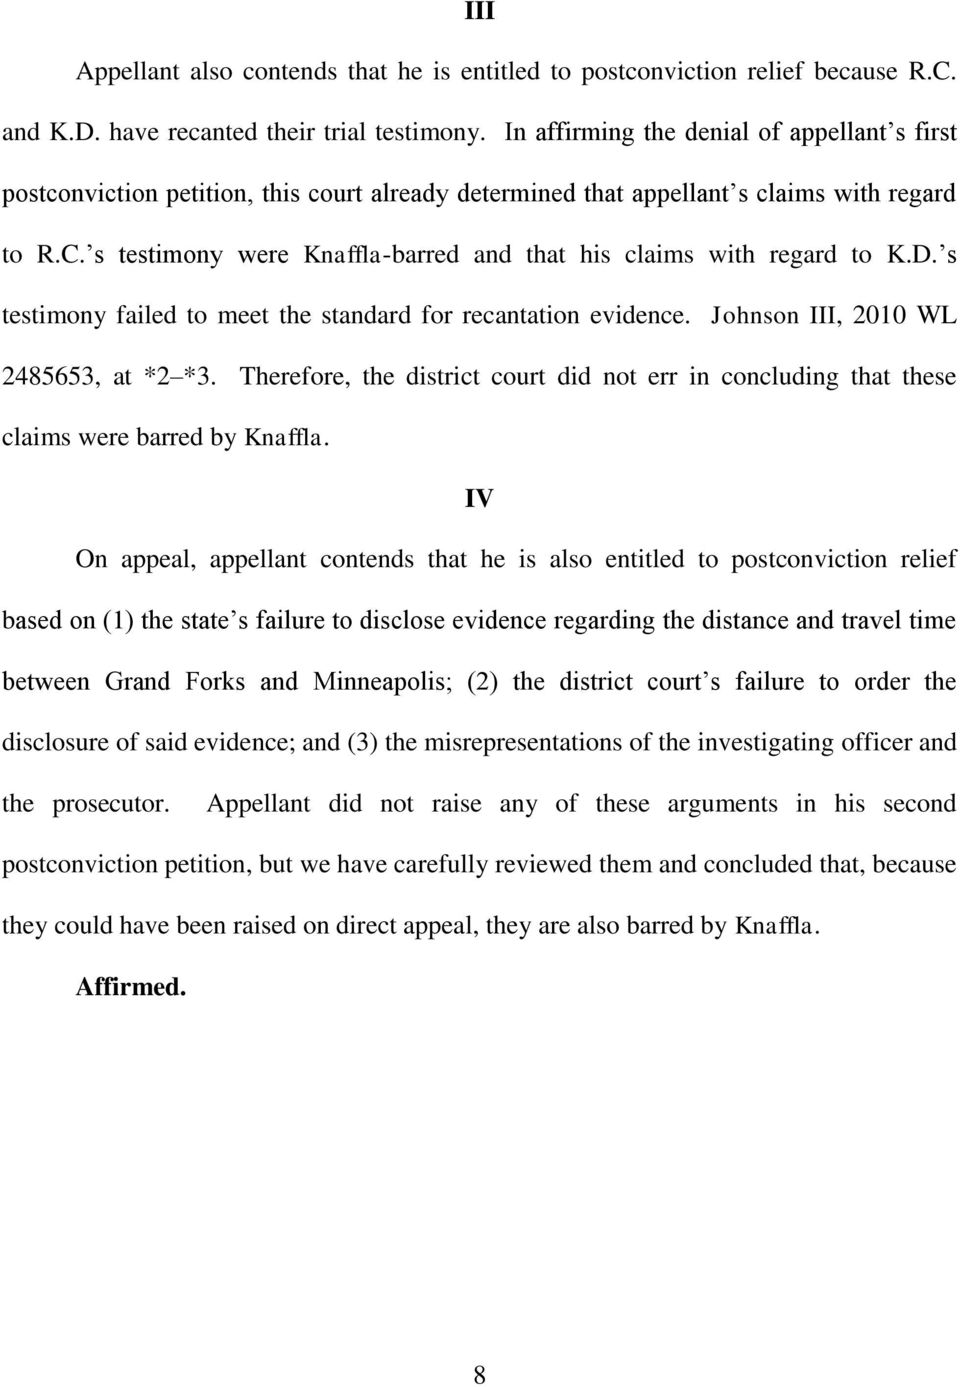 s testimony were Knaffla-barred and that his claims with regard to K.D. s testimony failed to meet the standard for recantation evidence. Johnson III, 2010 WL 2485653, at *2 *3.